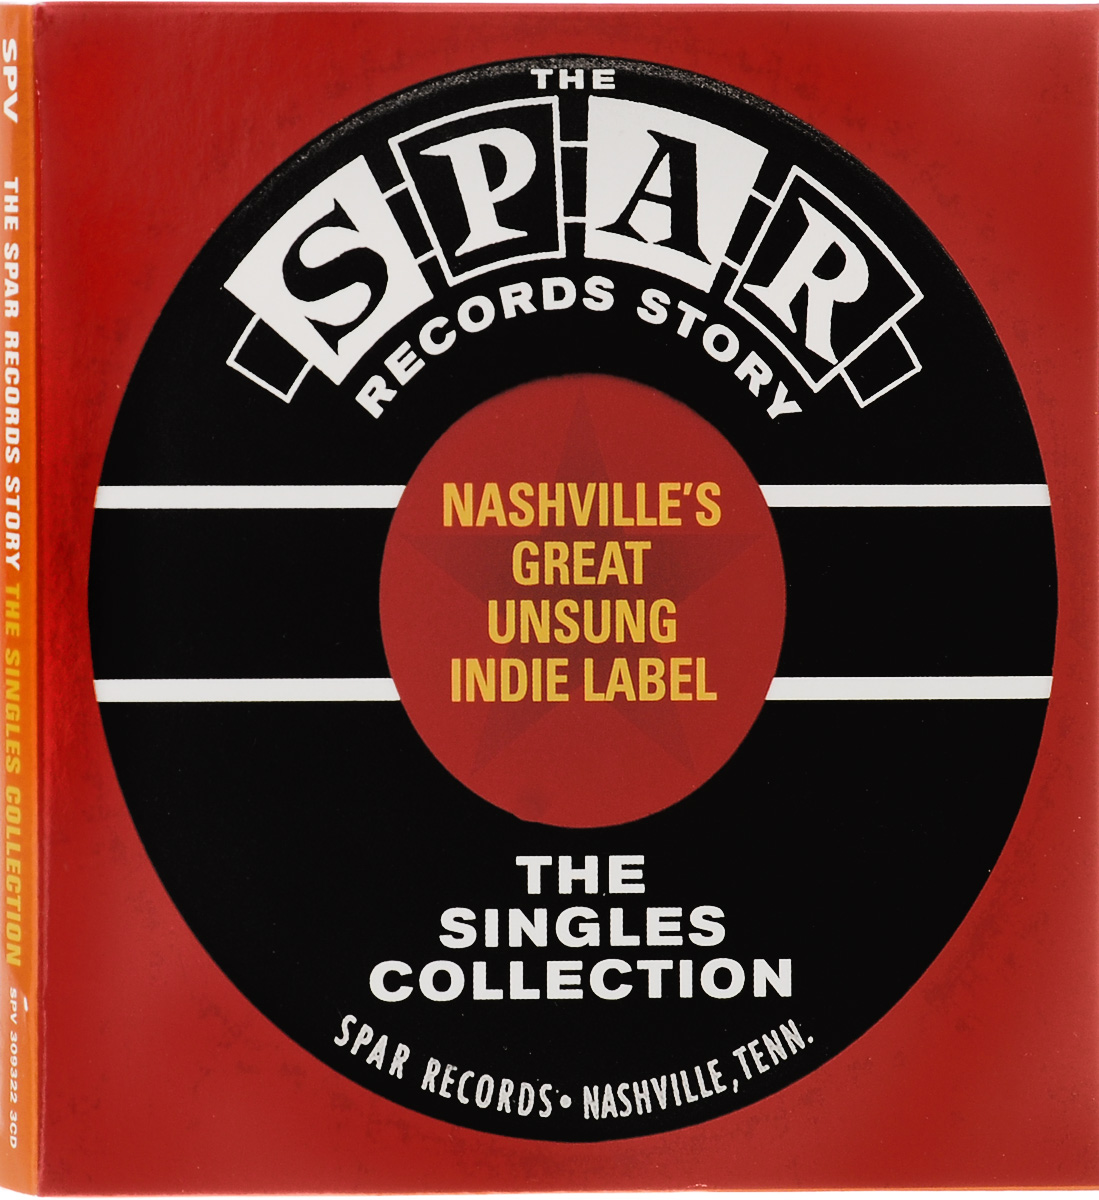 The Spar Records Story. The Singles Collection (3 CD) the perfect product phase free shipping pink floyd discovery cd 16 singles fine suit boxed full collection factory sealed limit